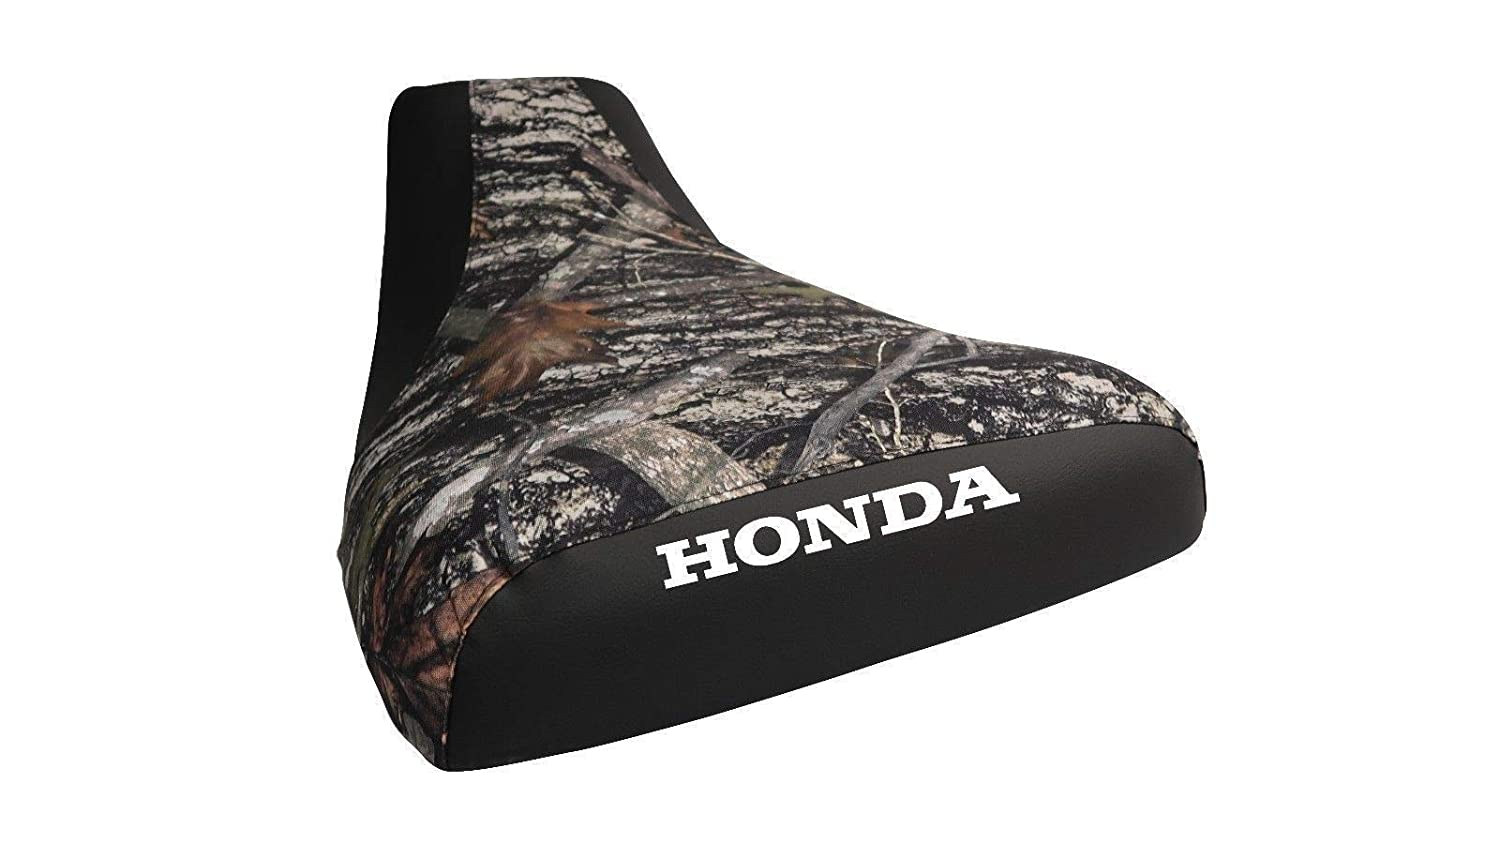 VPS Seat Cover Compatible With Honda Rancher 350 2001-06 Camo Top Logo Seat Cover